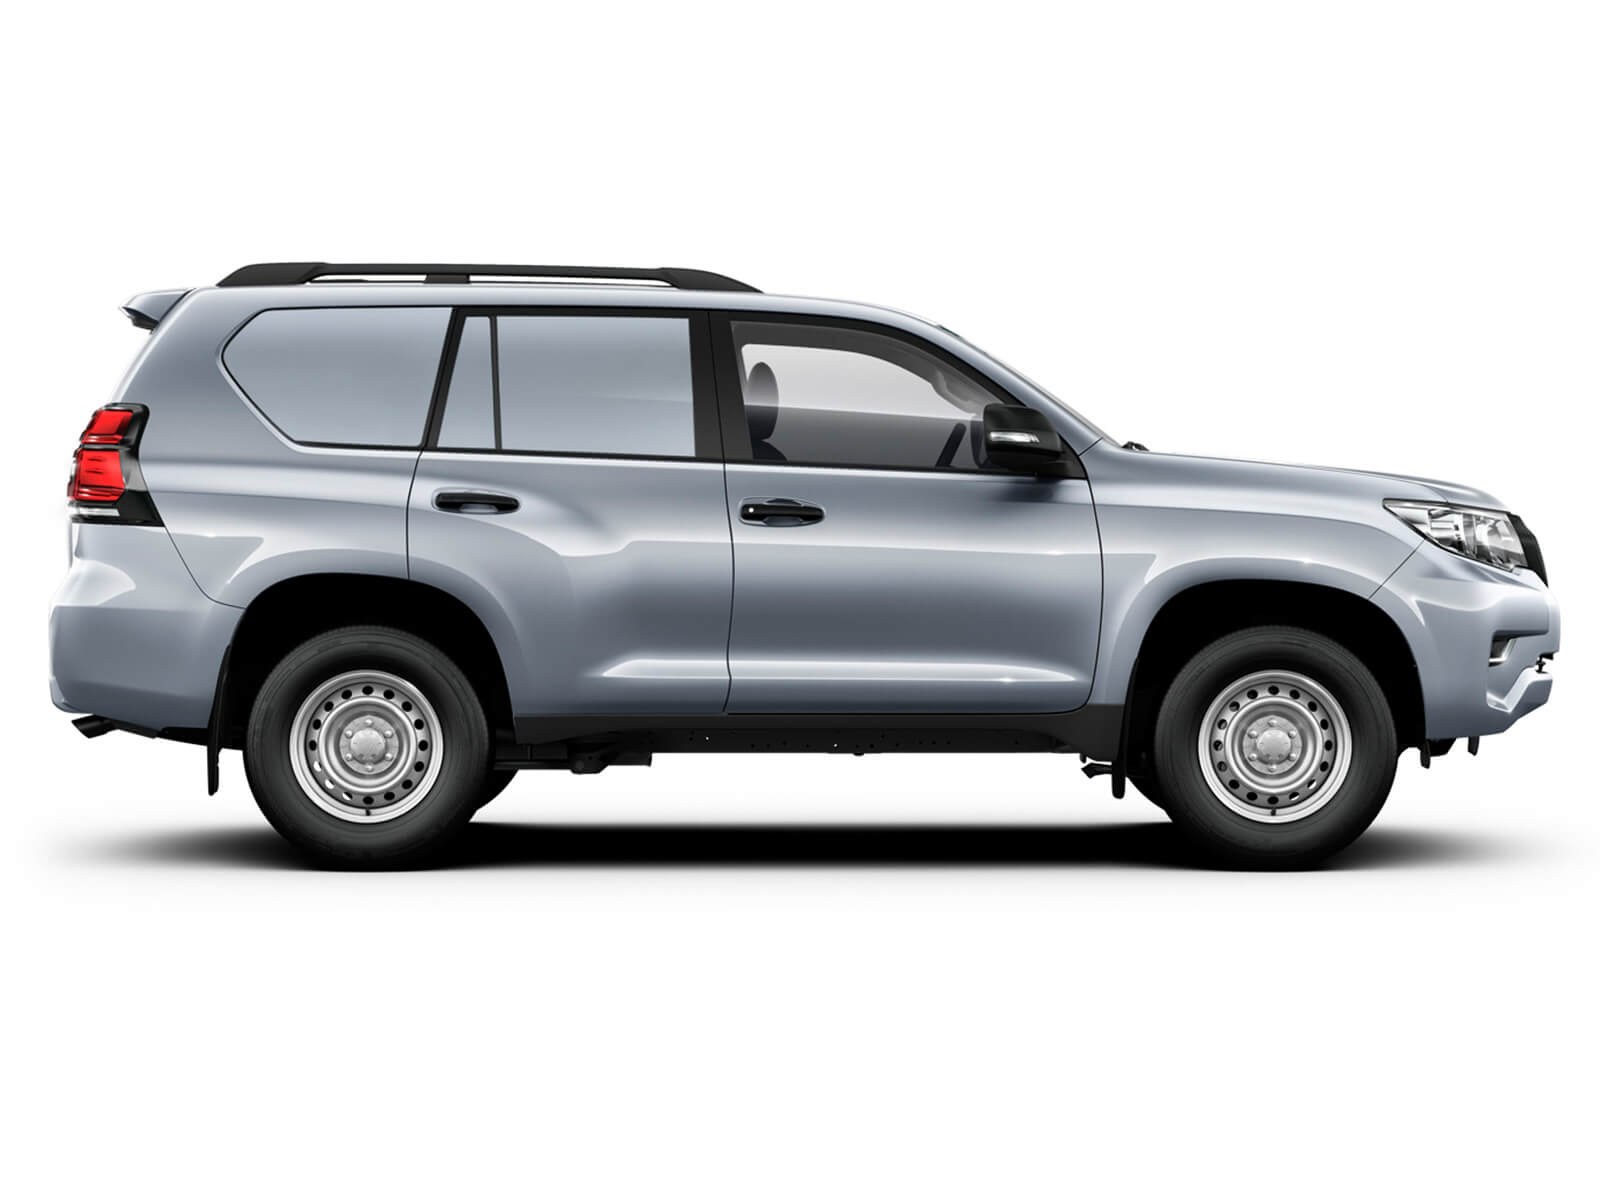 The Land Cruiser Utility Commercial Steven Eagell Toyota